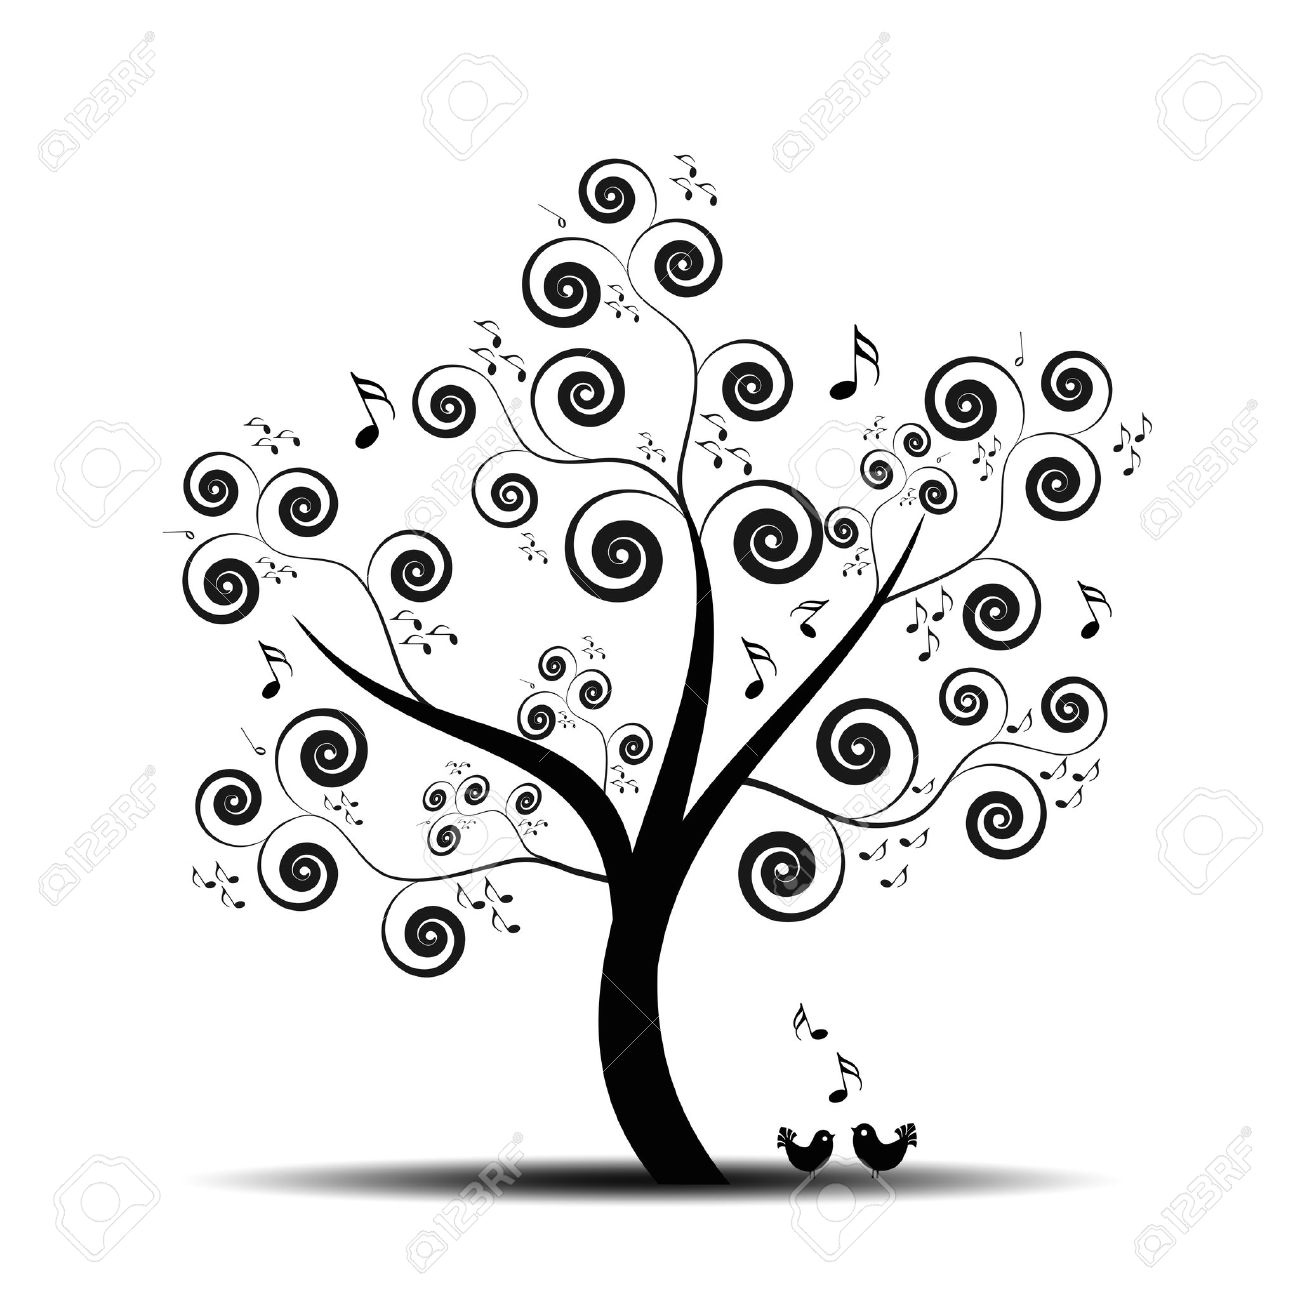 Abstract art tree with music notes and lovely birds Stock Vector - 9813318